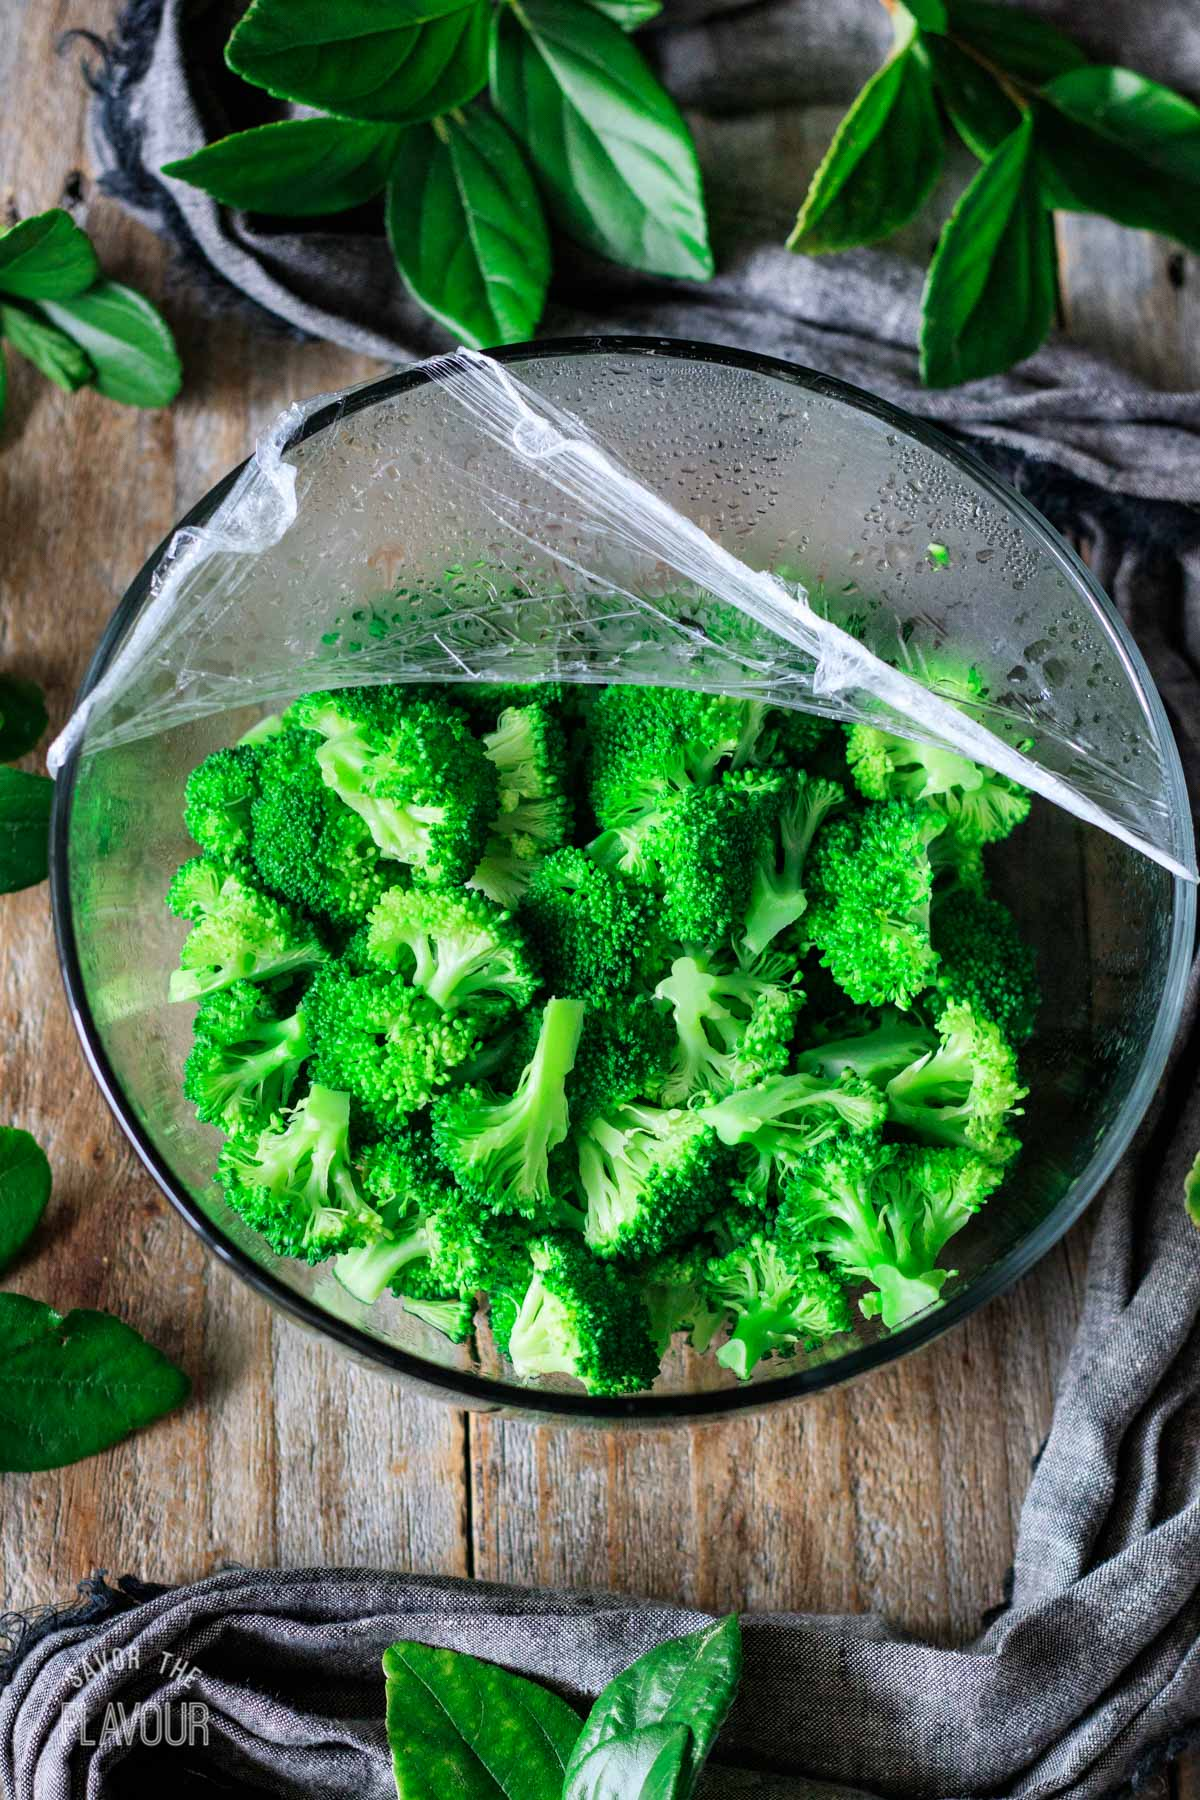 steamed broccoli florets in a glass bowl